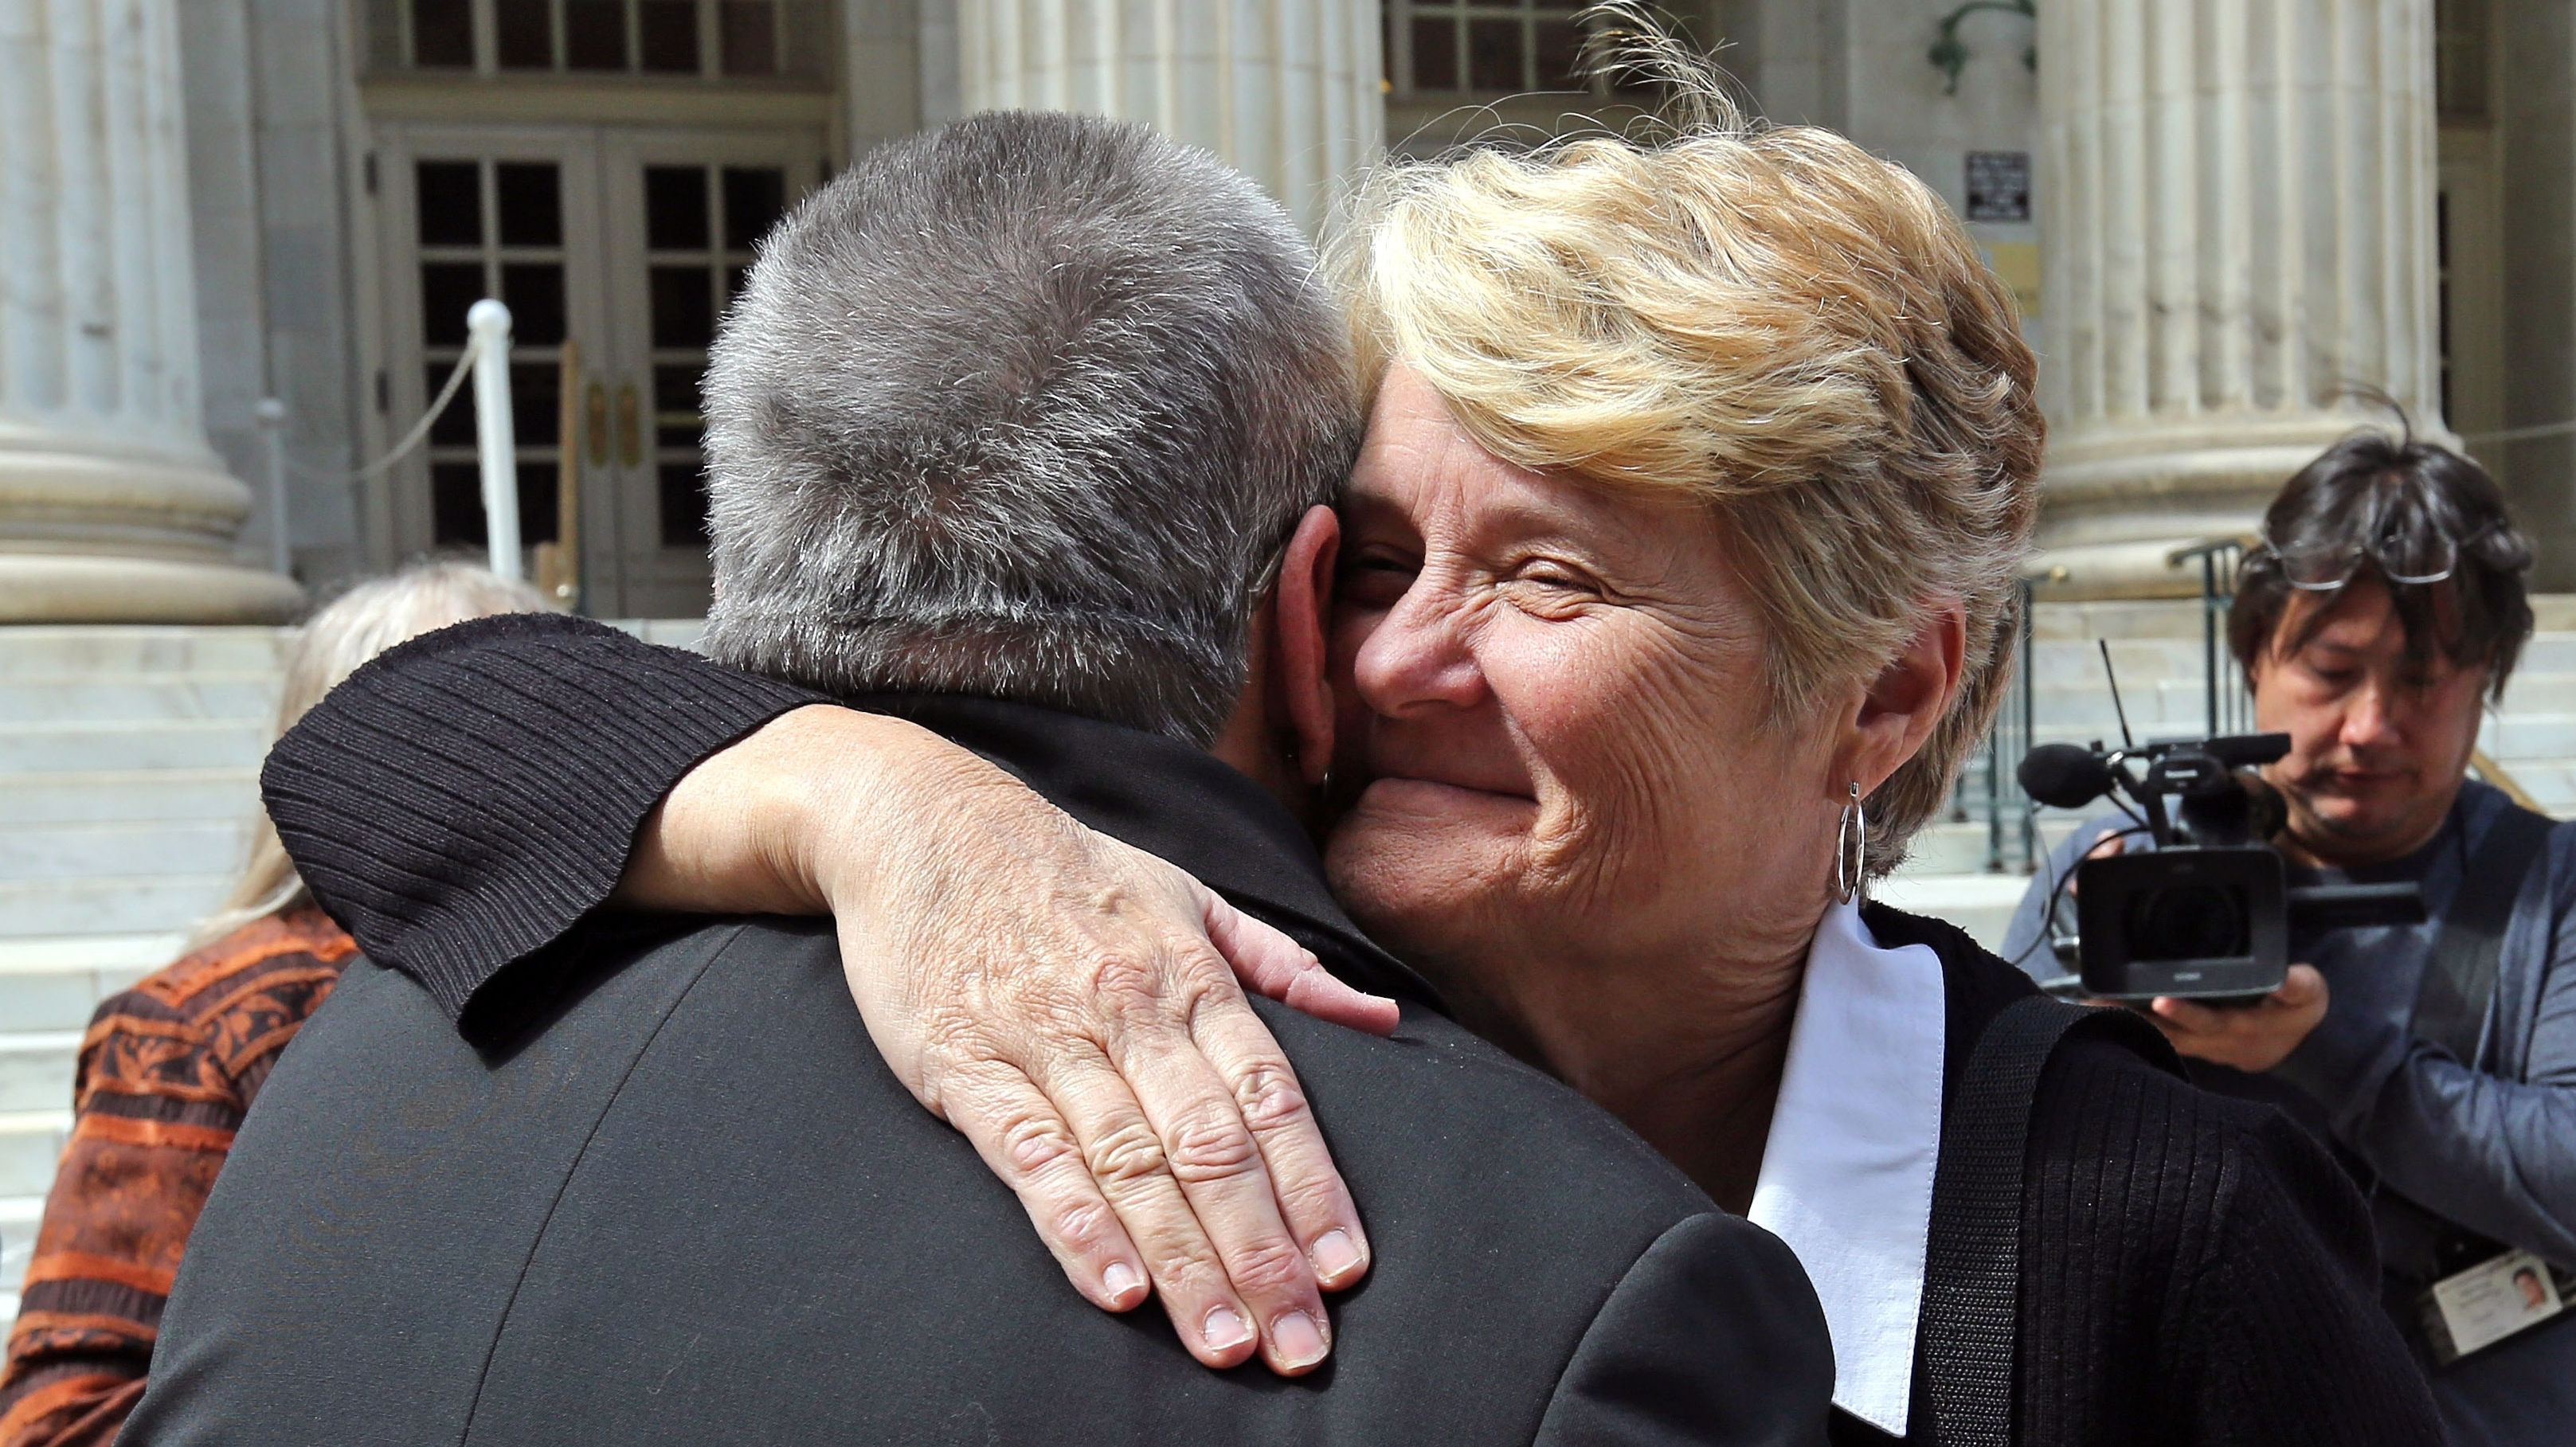 Sue Barton, a plaintiff challenging Oklahoma's gay marriage ban, gets a hug from her pastor following a hearing at the 10th U.S. Circuit Court of Appeals in Denver, Thursday on April 17